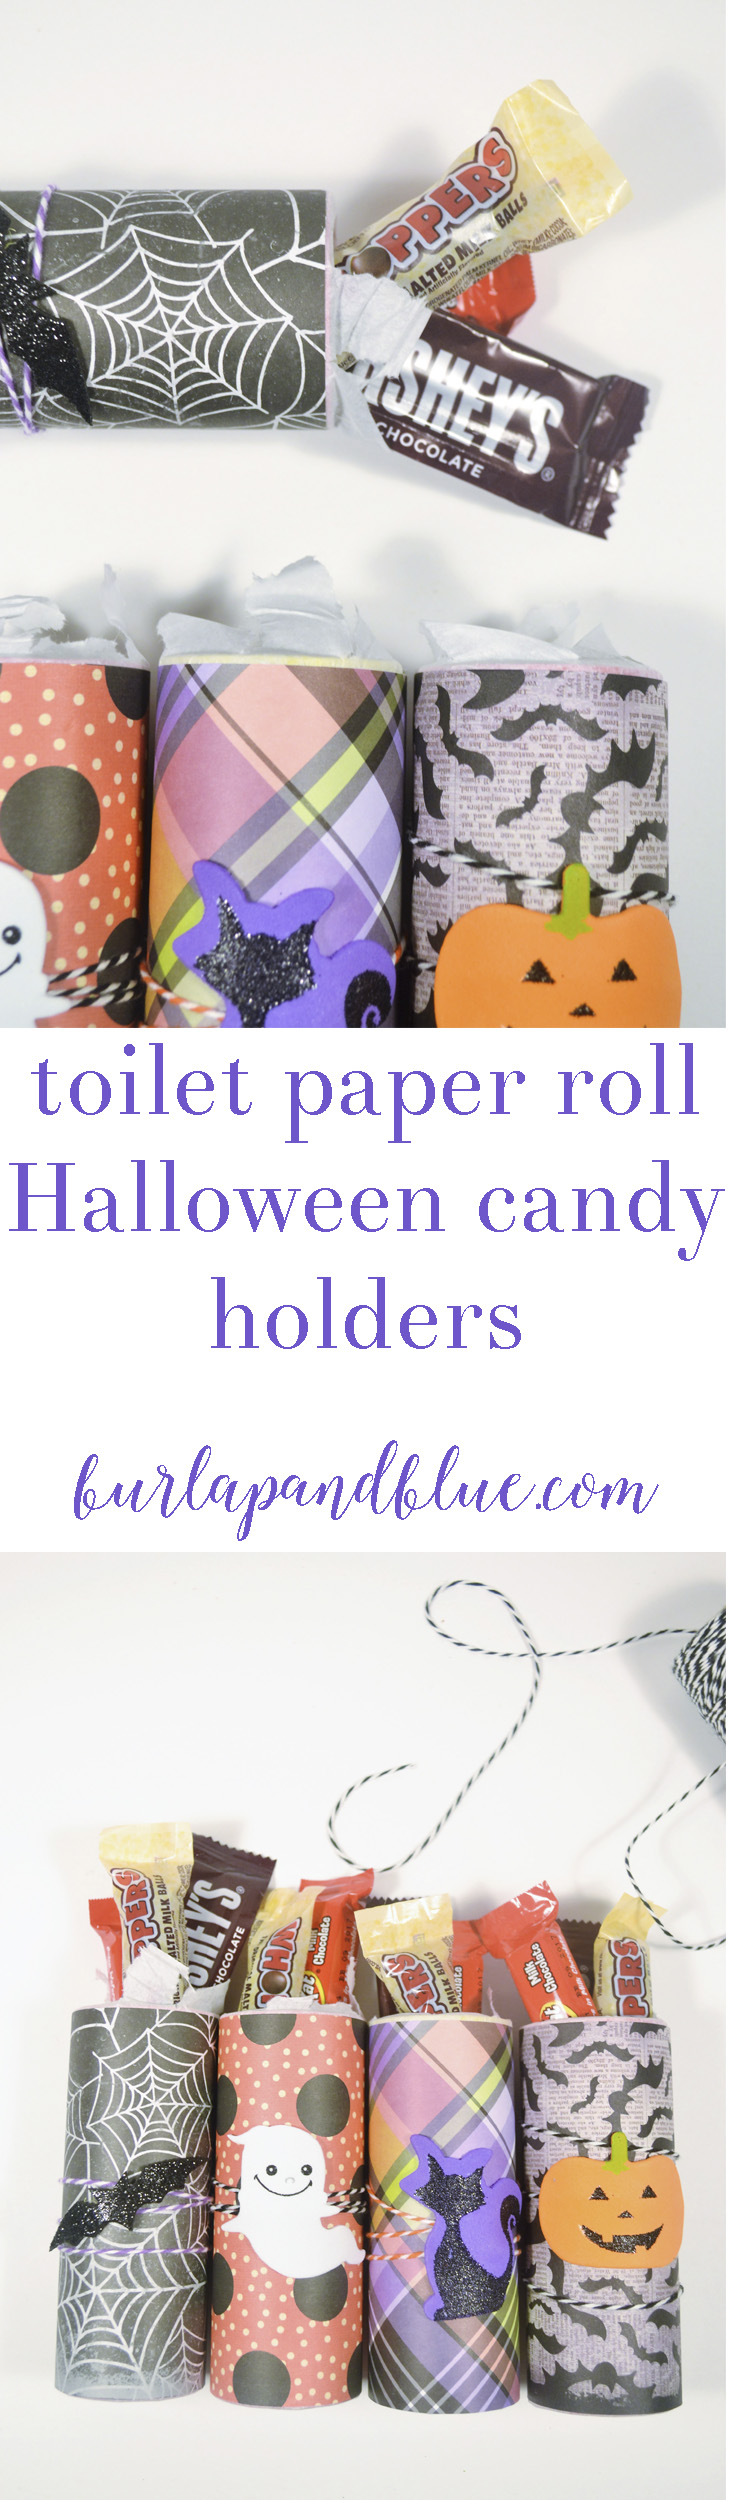 These toilet paper roll Halloween candy holders are an adorable way to serve up treats! Using scrapbook paper, Fall embellishments, twine and Mod Podge, these come together quickly and are the perfect kids craft!